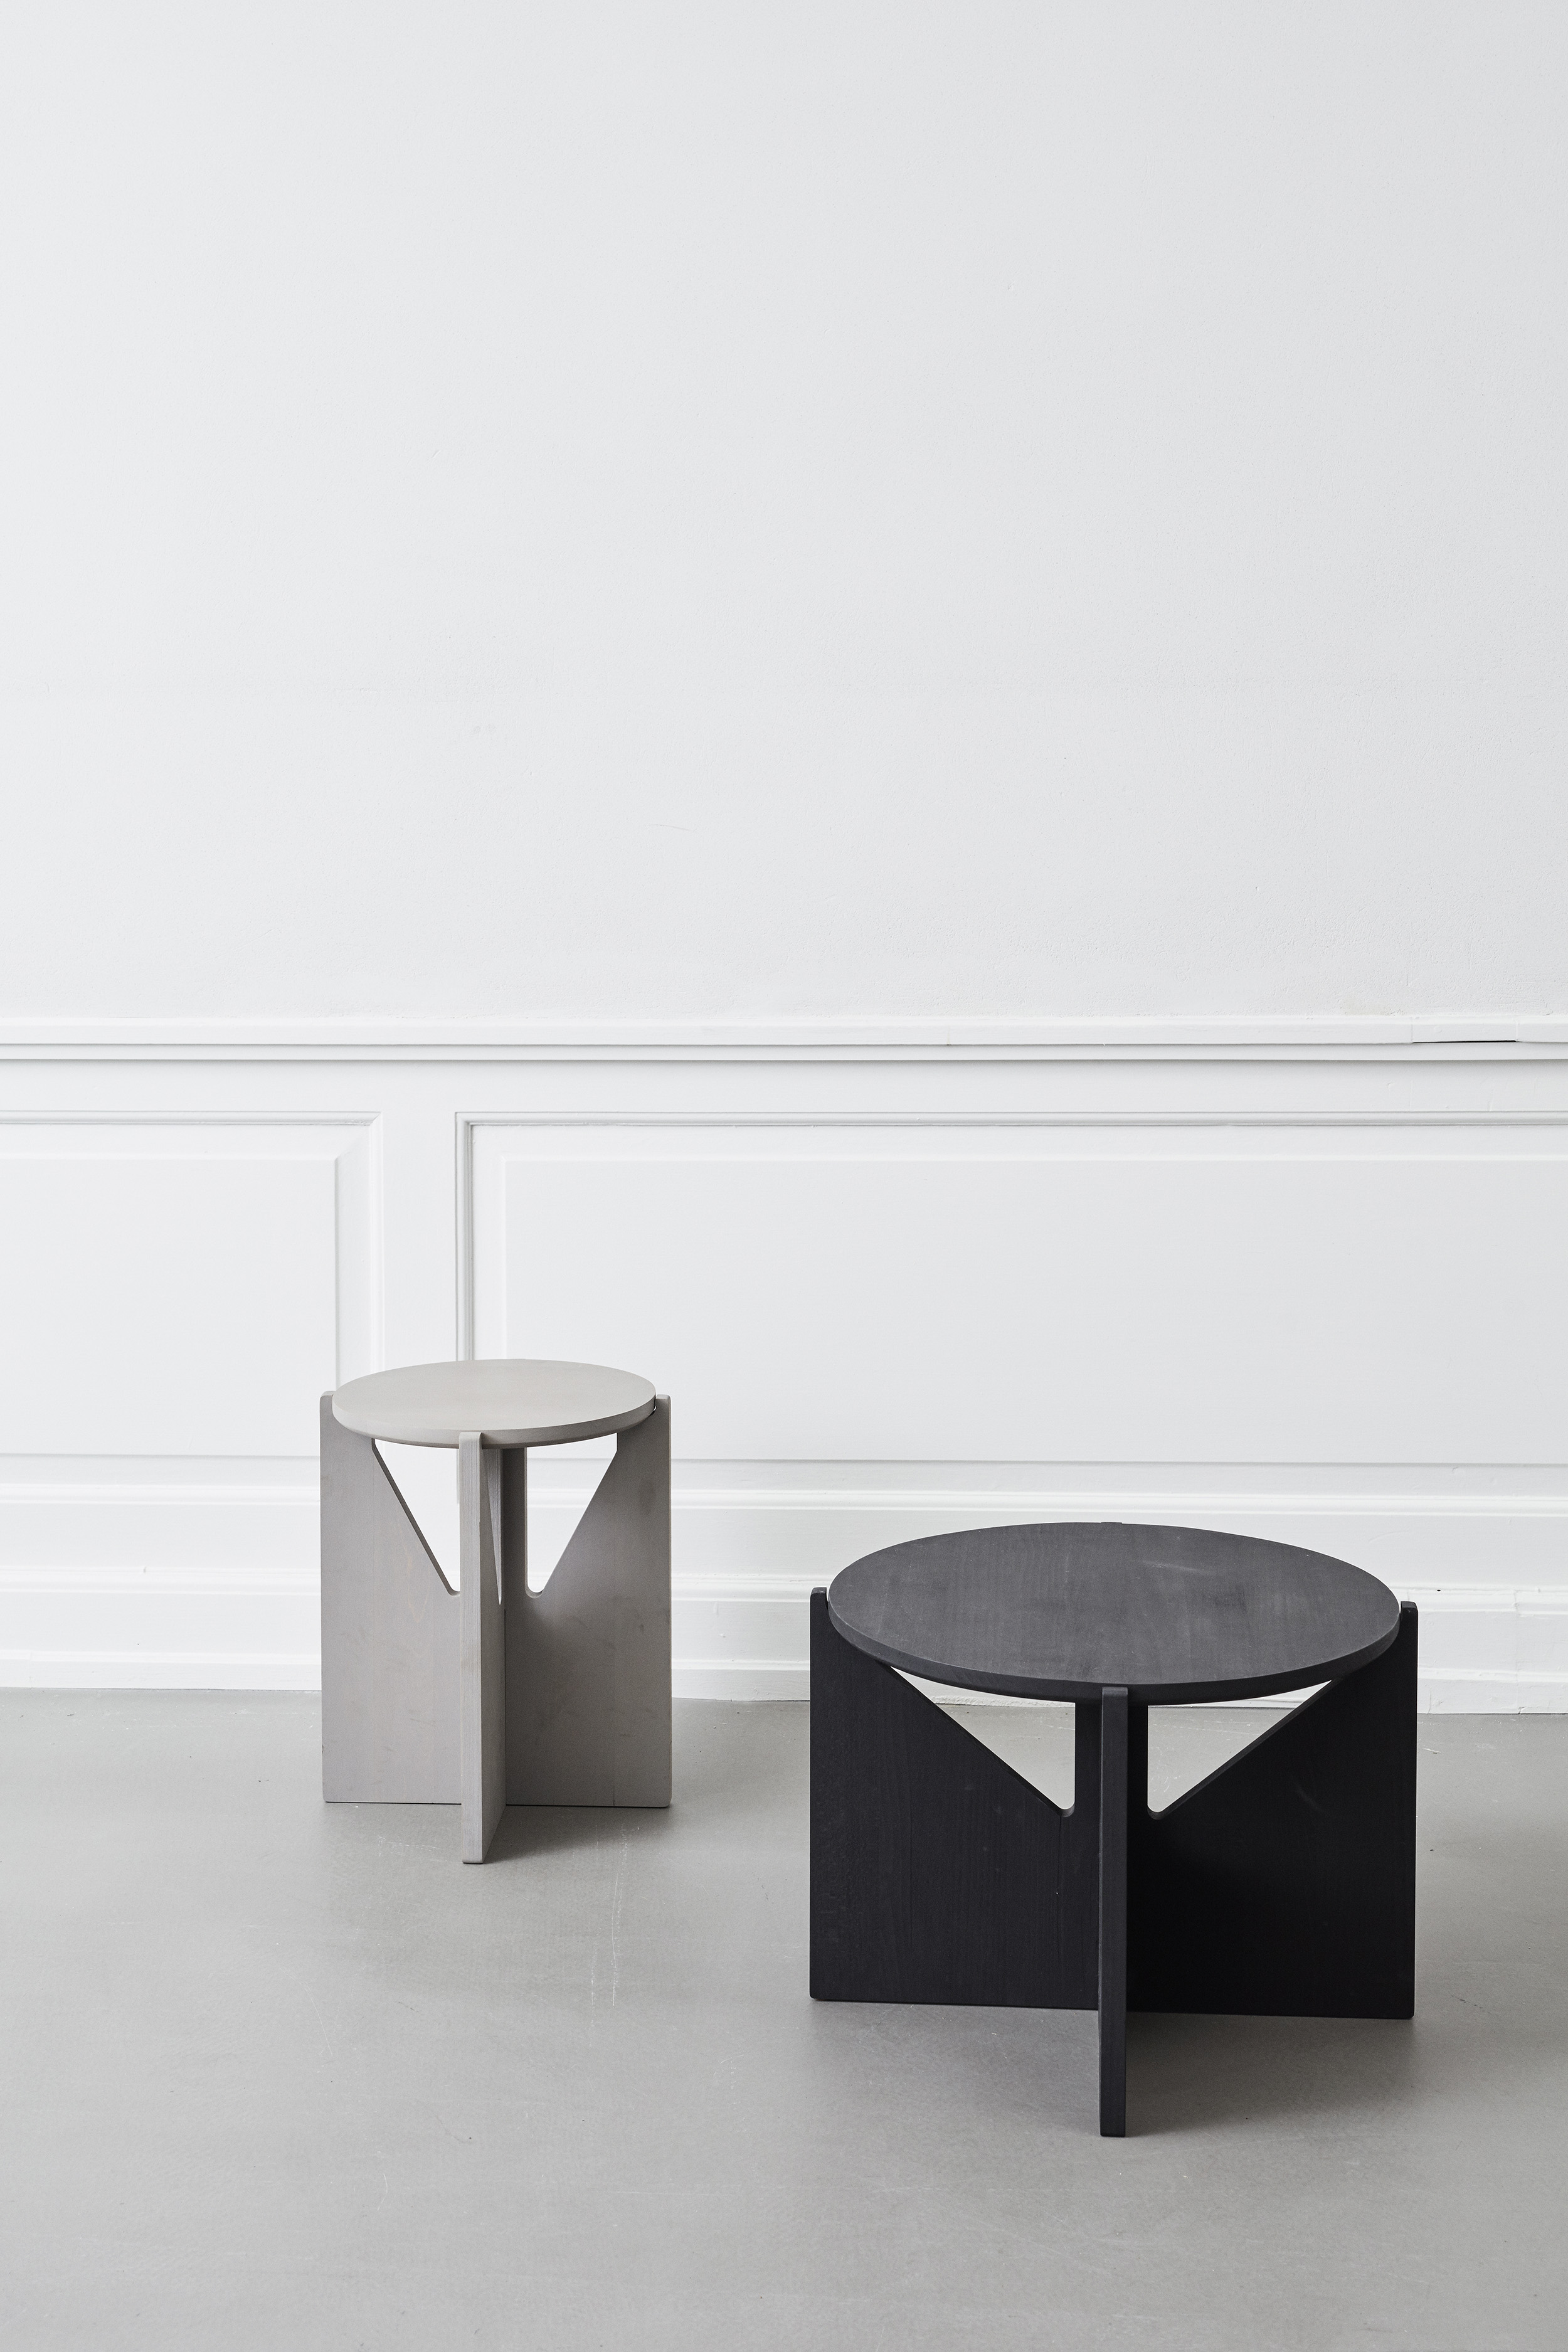 Minimalist Table Sculptural Minimalism From Kristina Dam Hannah In The House